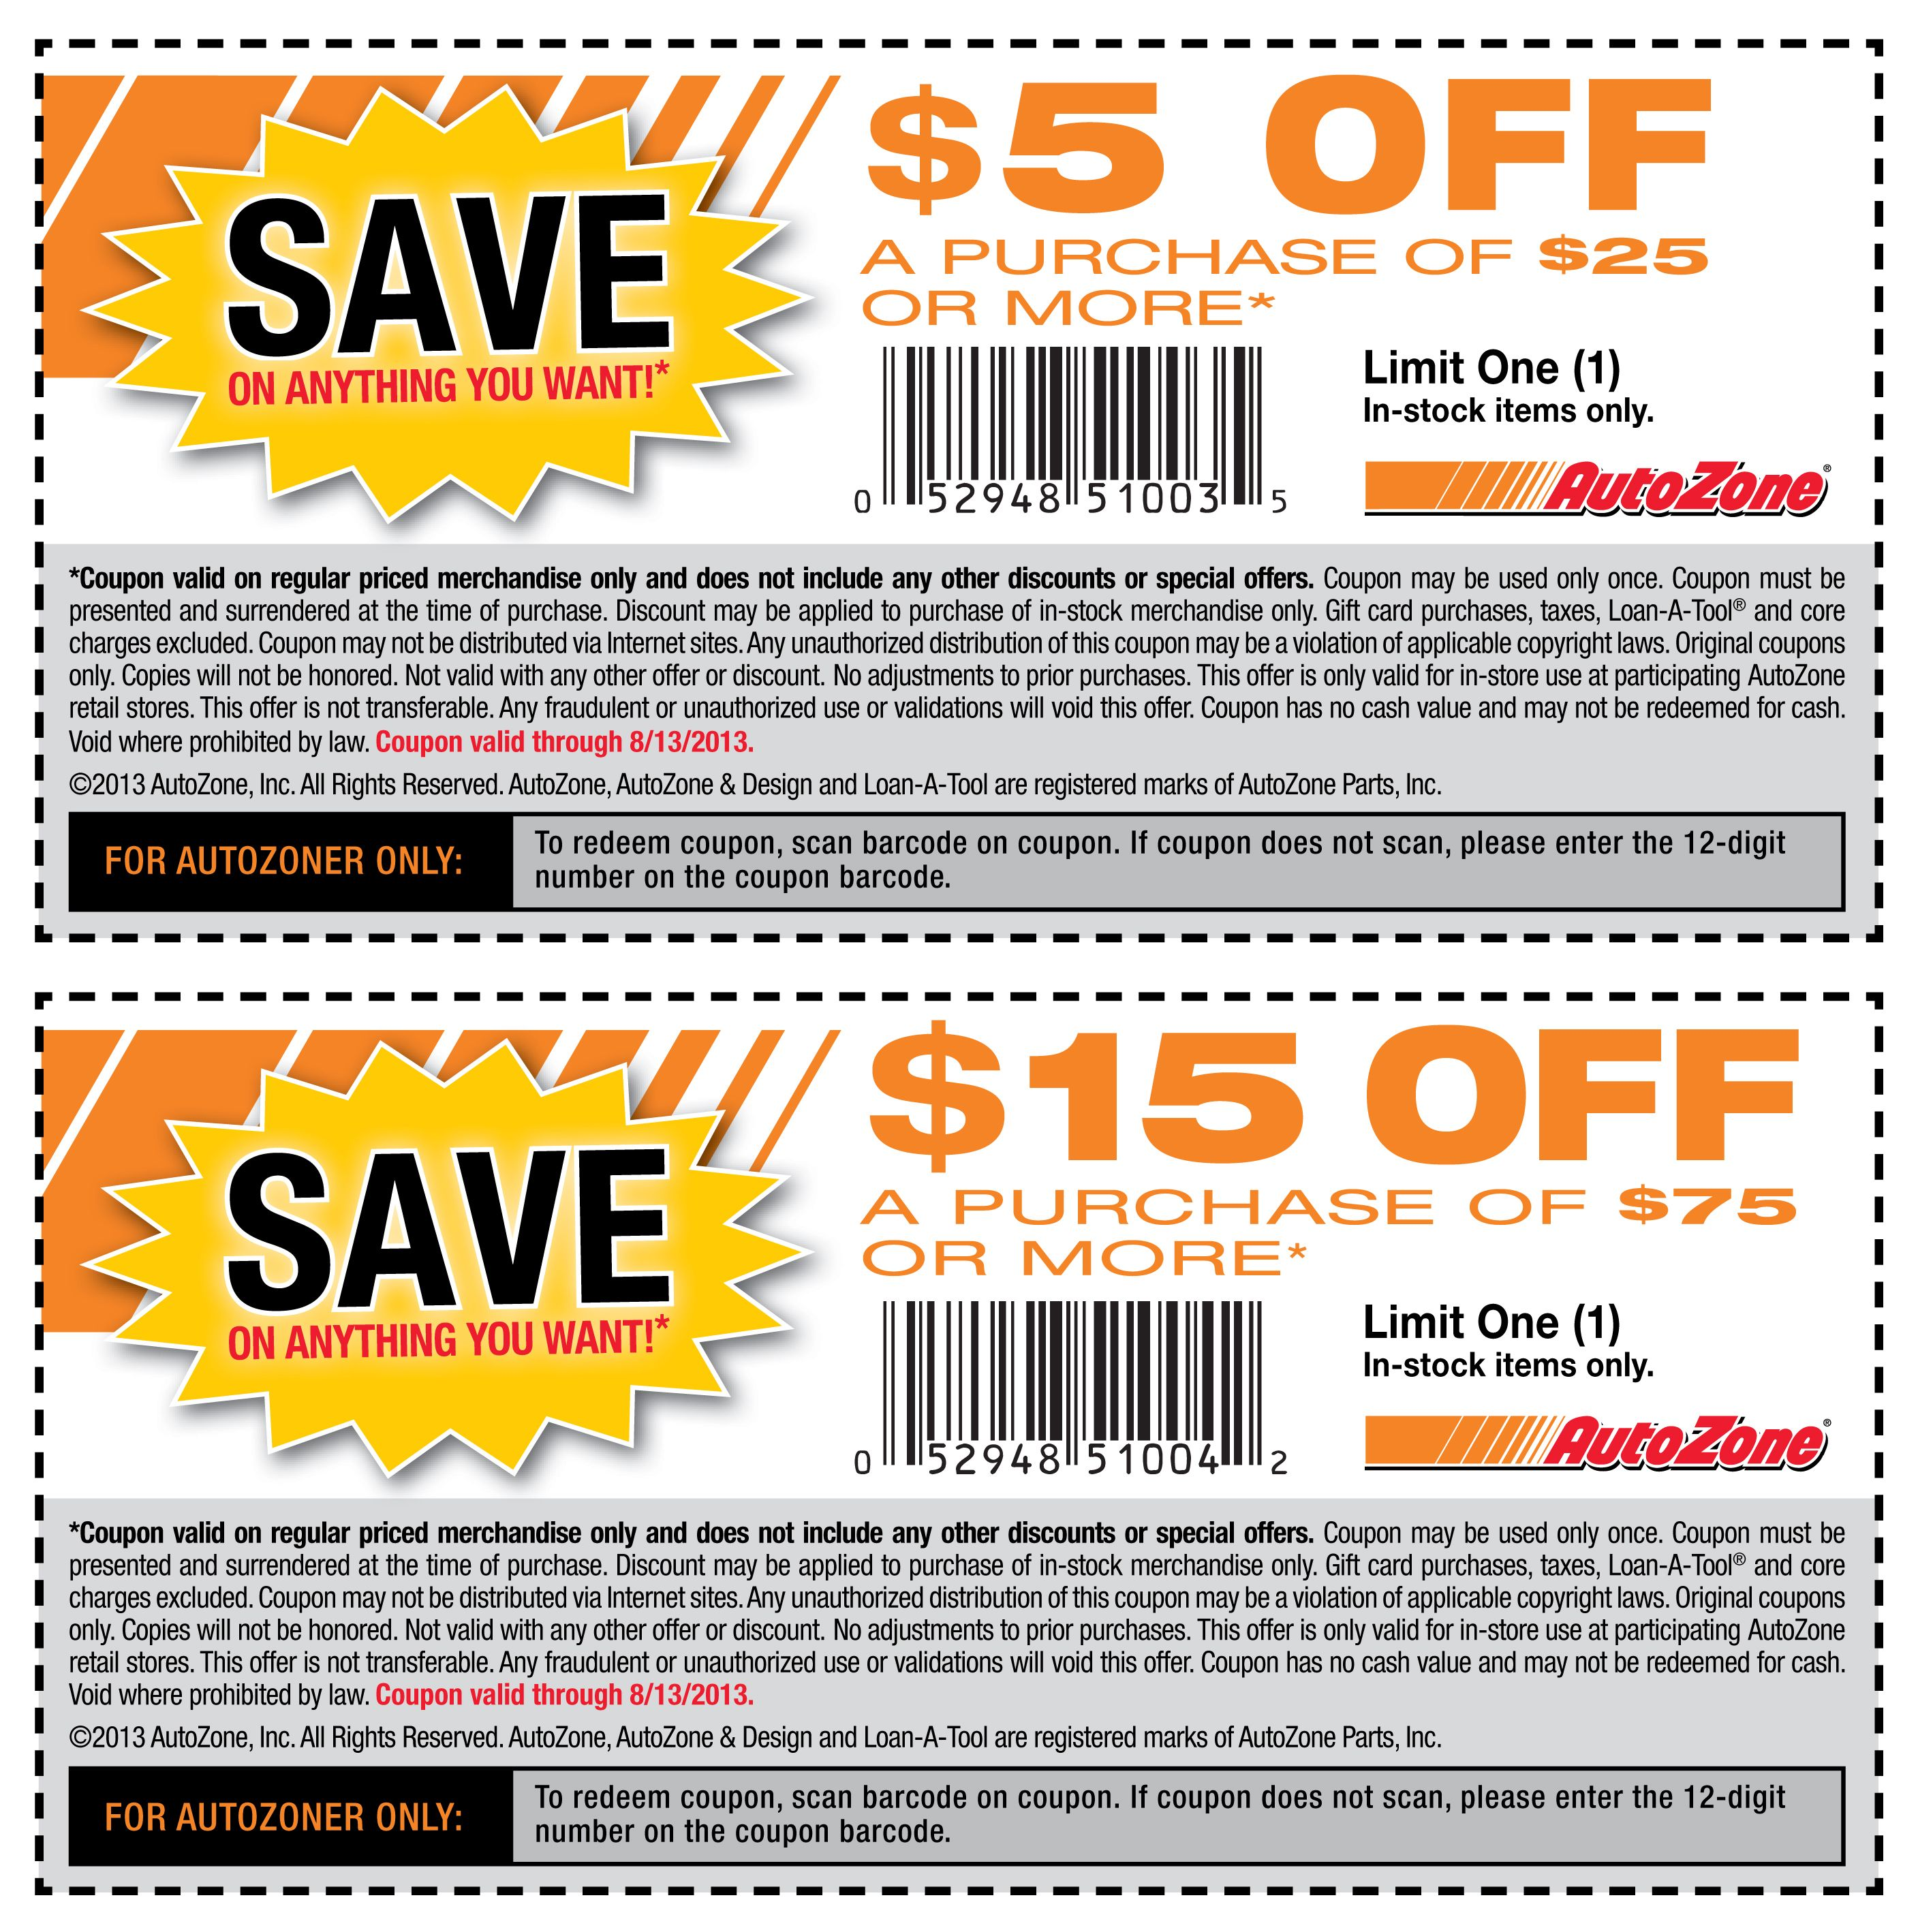 Auto Zone Printable Coupons Coupon Apps Printable Coupons Coupons